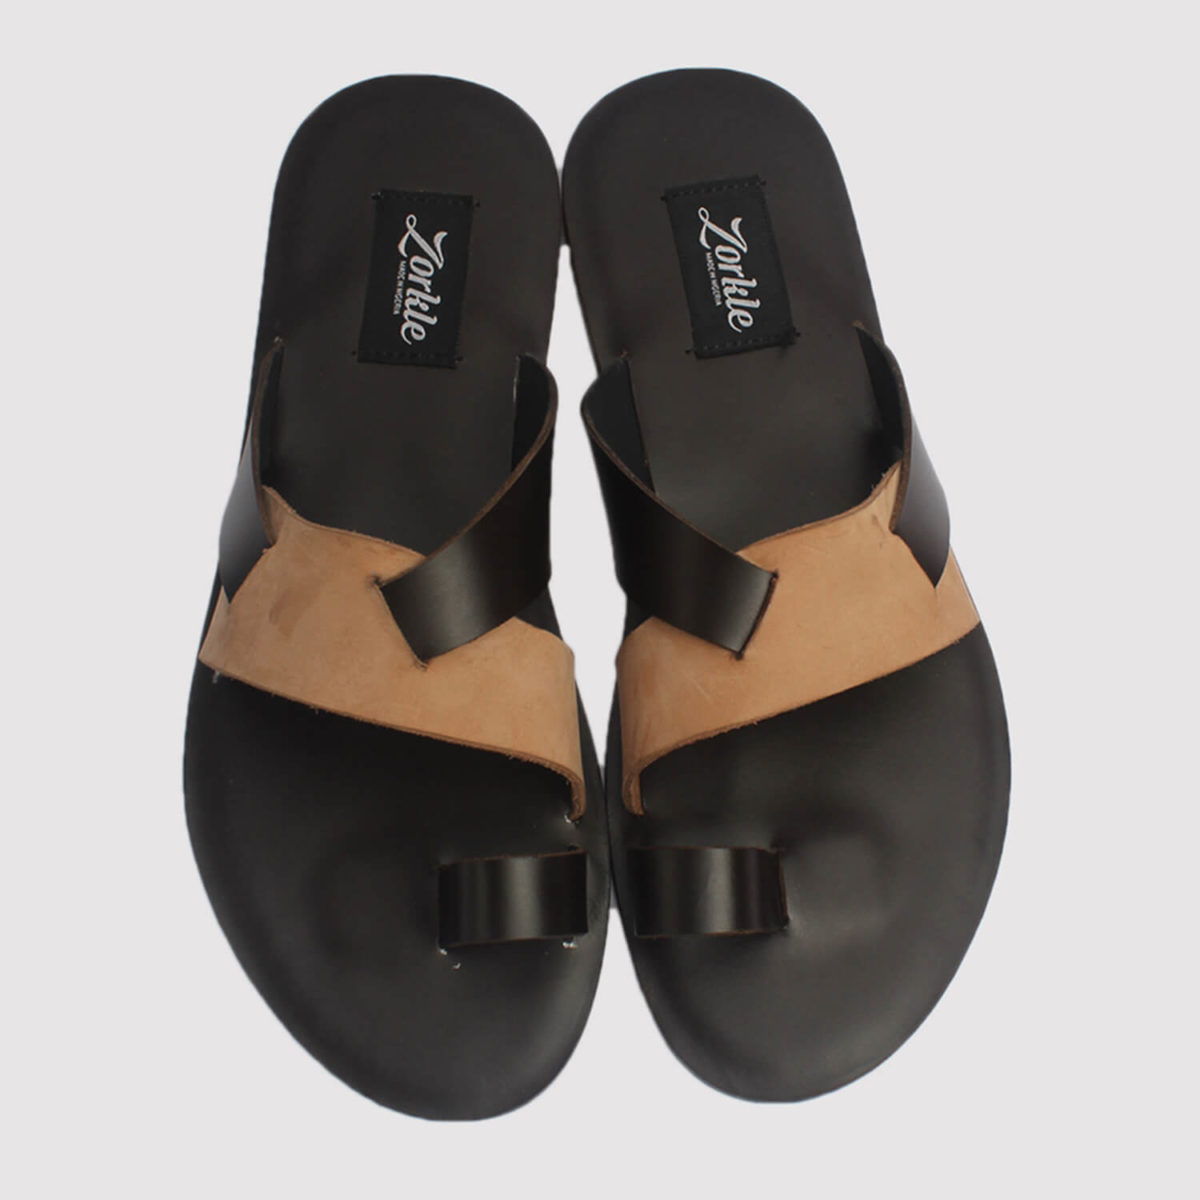 dereck slippers brown leather zorkle shoes lagos nigeria